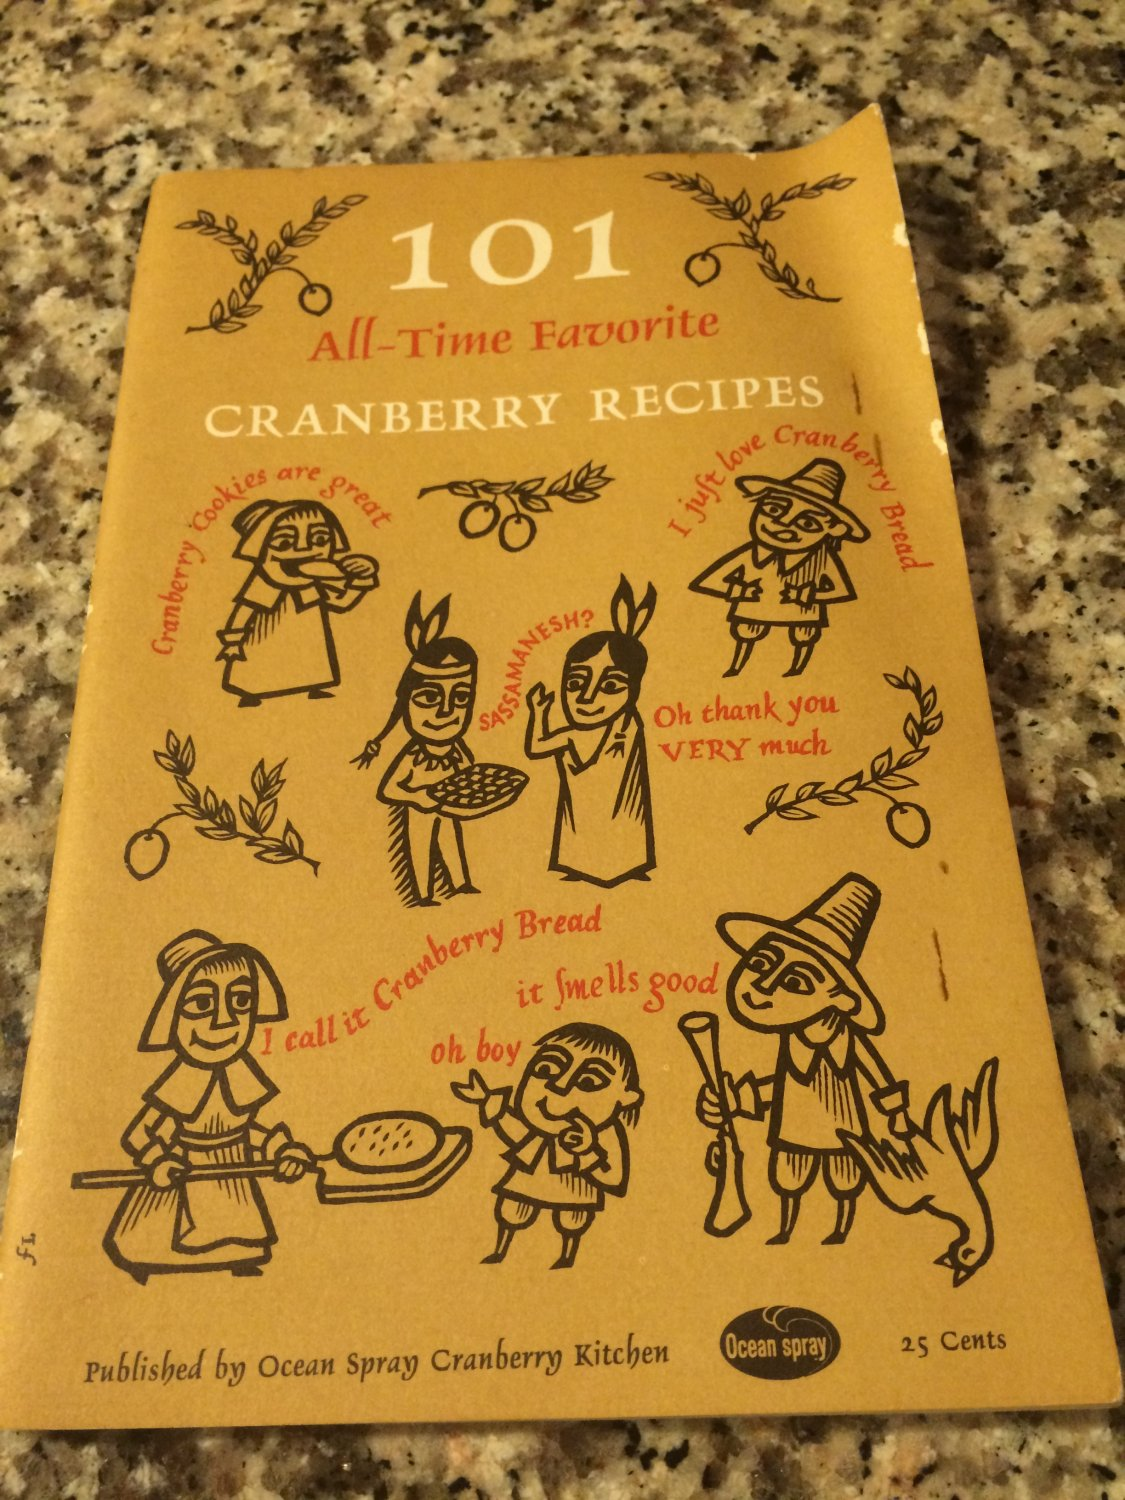 101 All-Time Favorite Cranberry Recipes by Published by Ocean Spray Cranberries